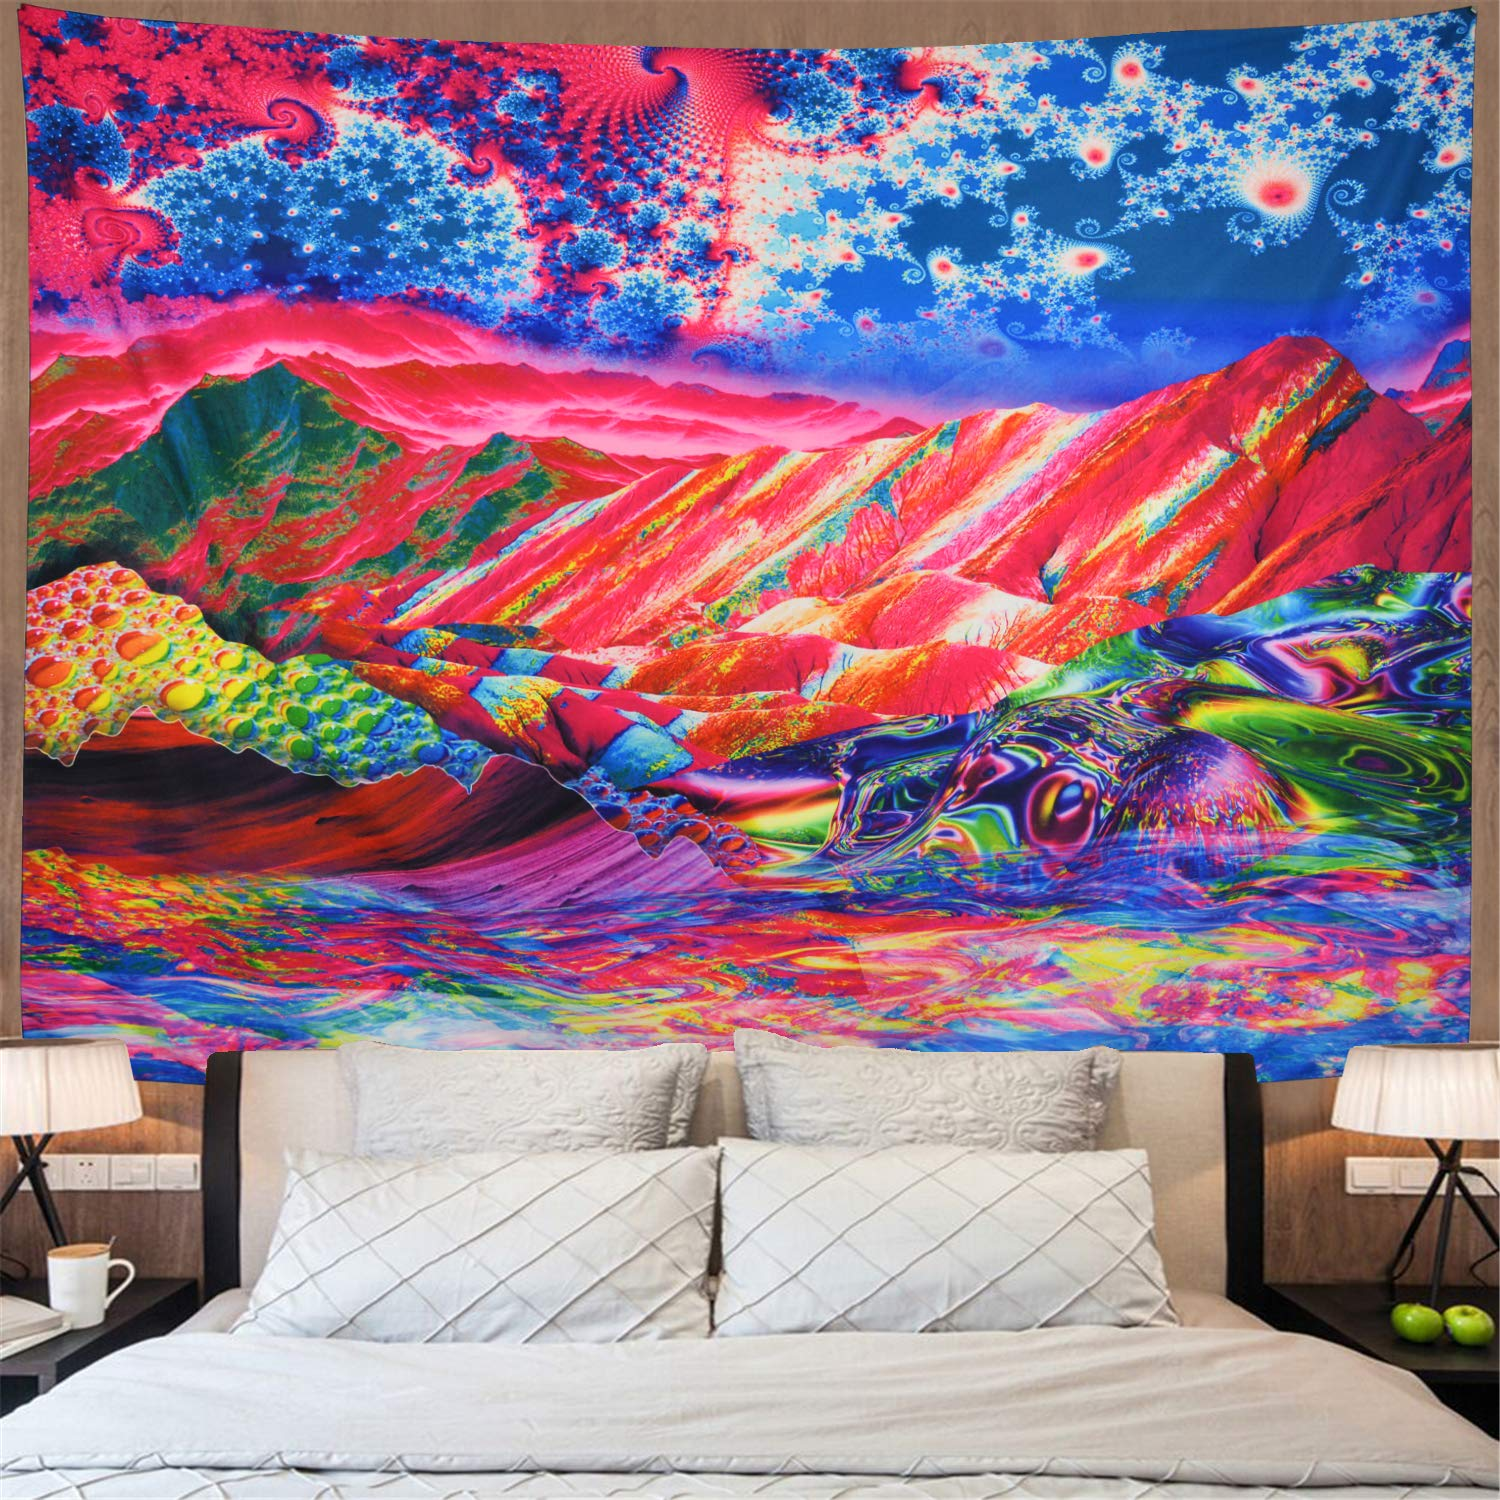 Amonercvita Trippy Mountain Tapestry Colorful Sky And Waves Wall Tapestry Psychedelic Clouds Landscape Tapestry Hippie Tapestry Wall Hanging For Living Room X Large Trippy Volcano Buy Online In Belize At Belize Desertcart Com Productid